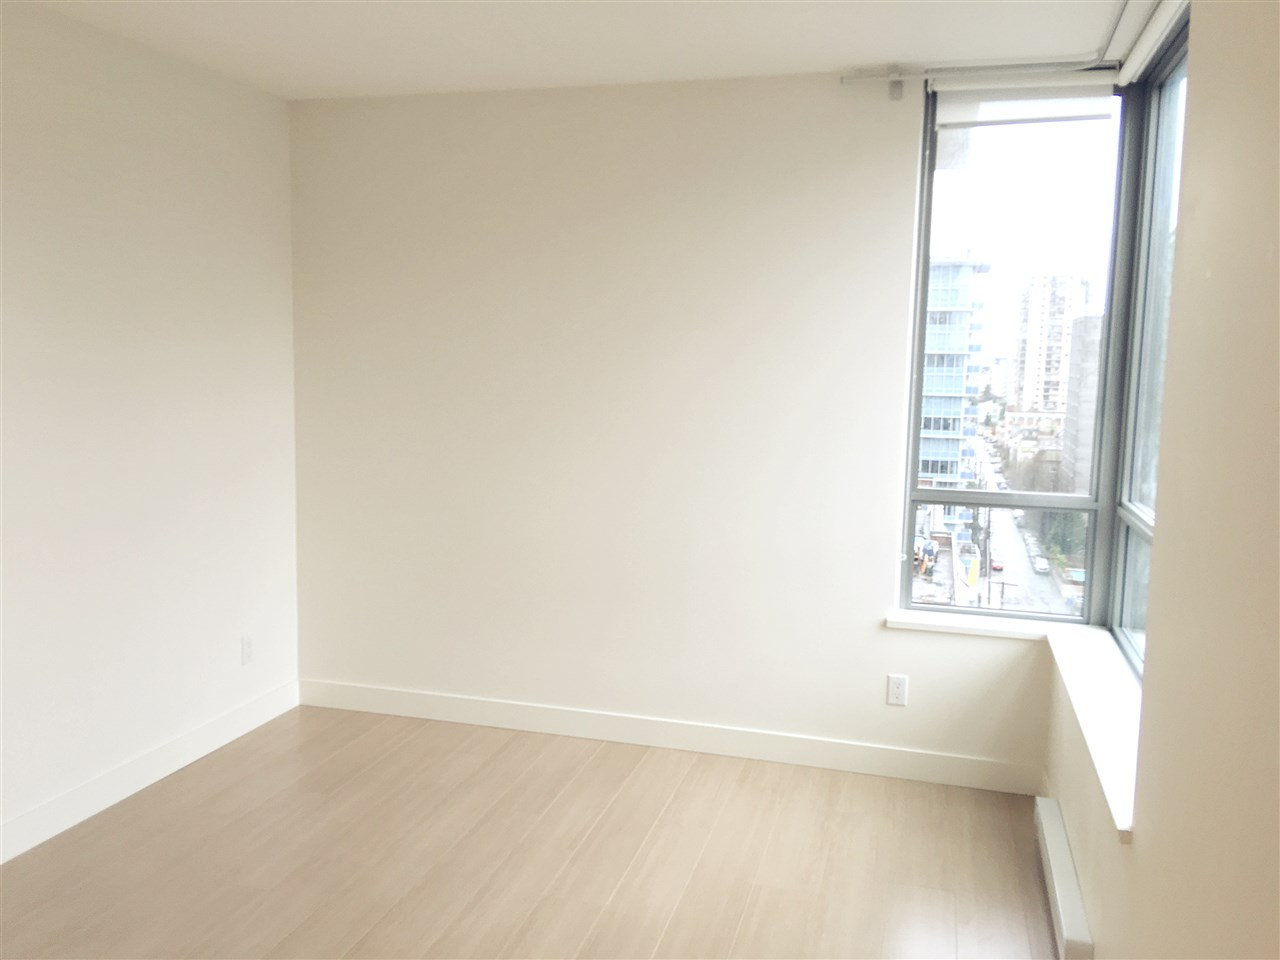 Condo Apartment at 1502 1308 HORNBY STREET, Unit 1502, Vancouver West, British Columbia. Image 7